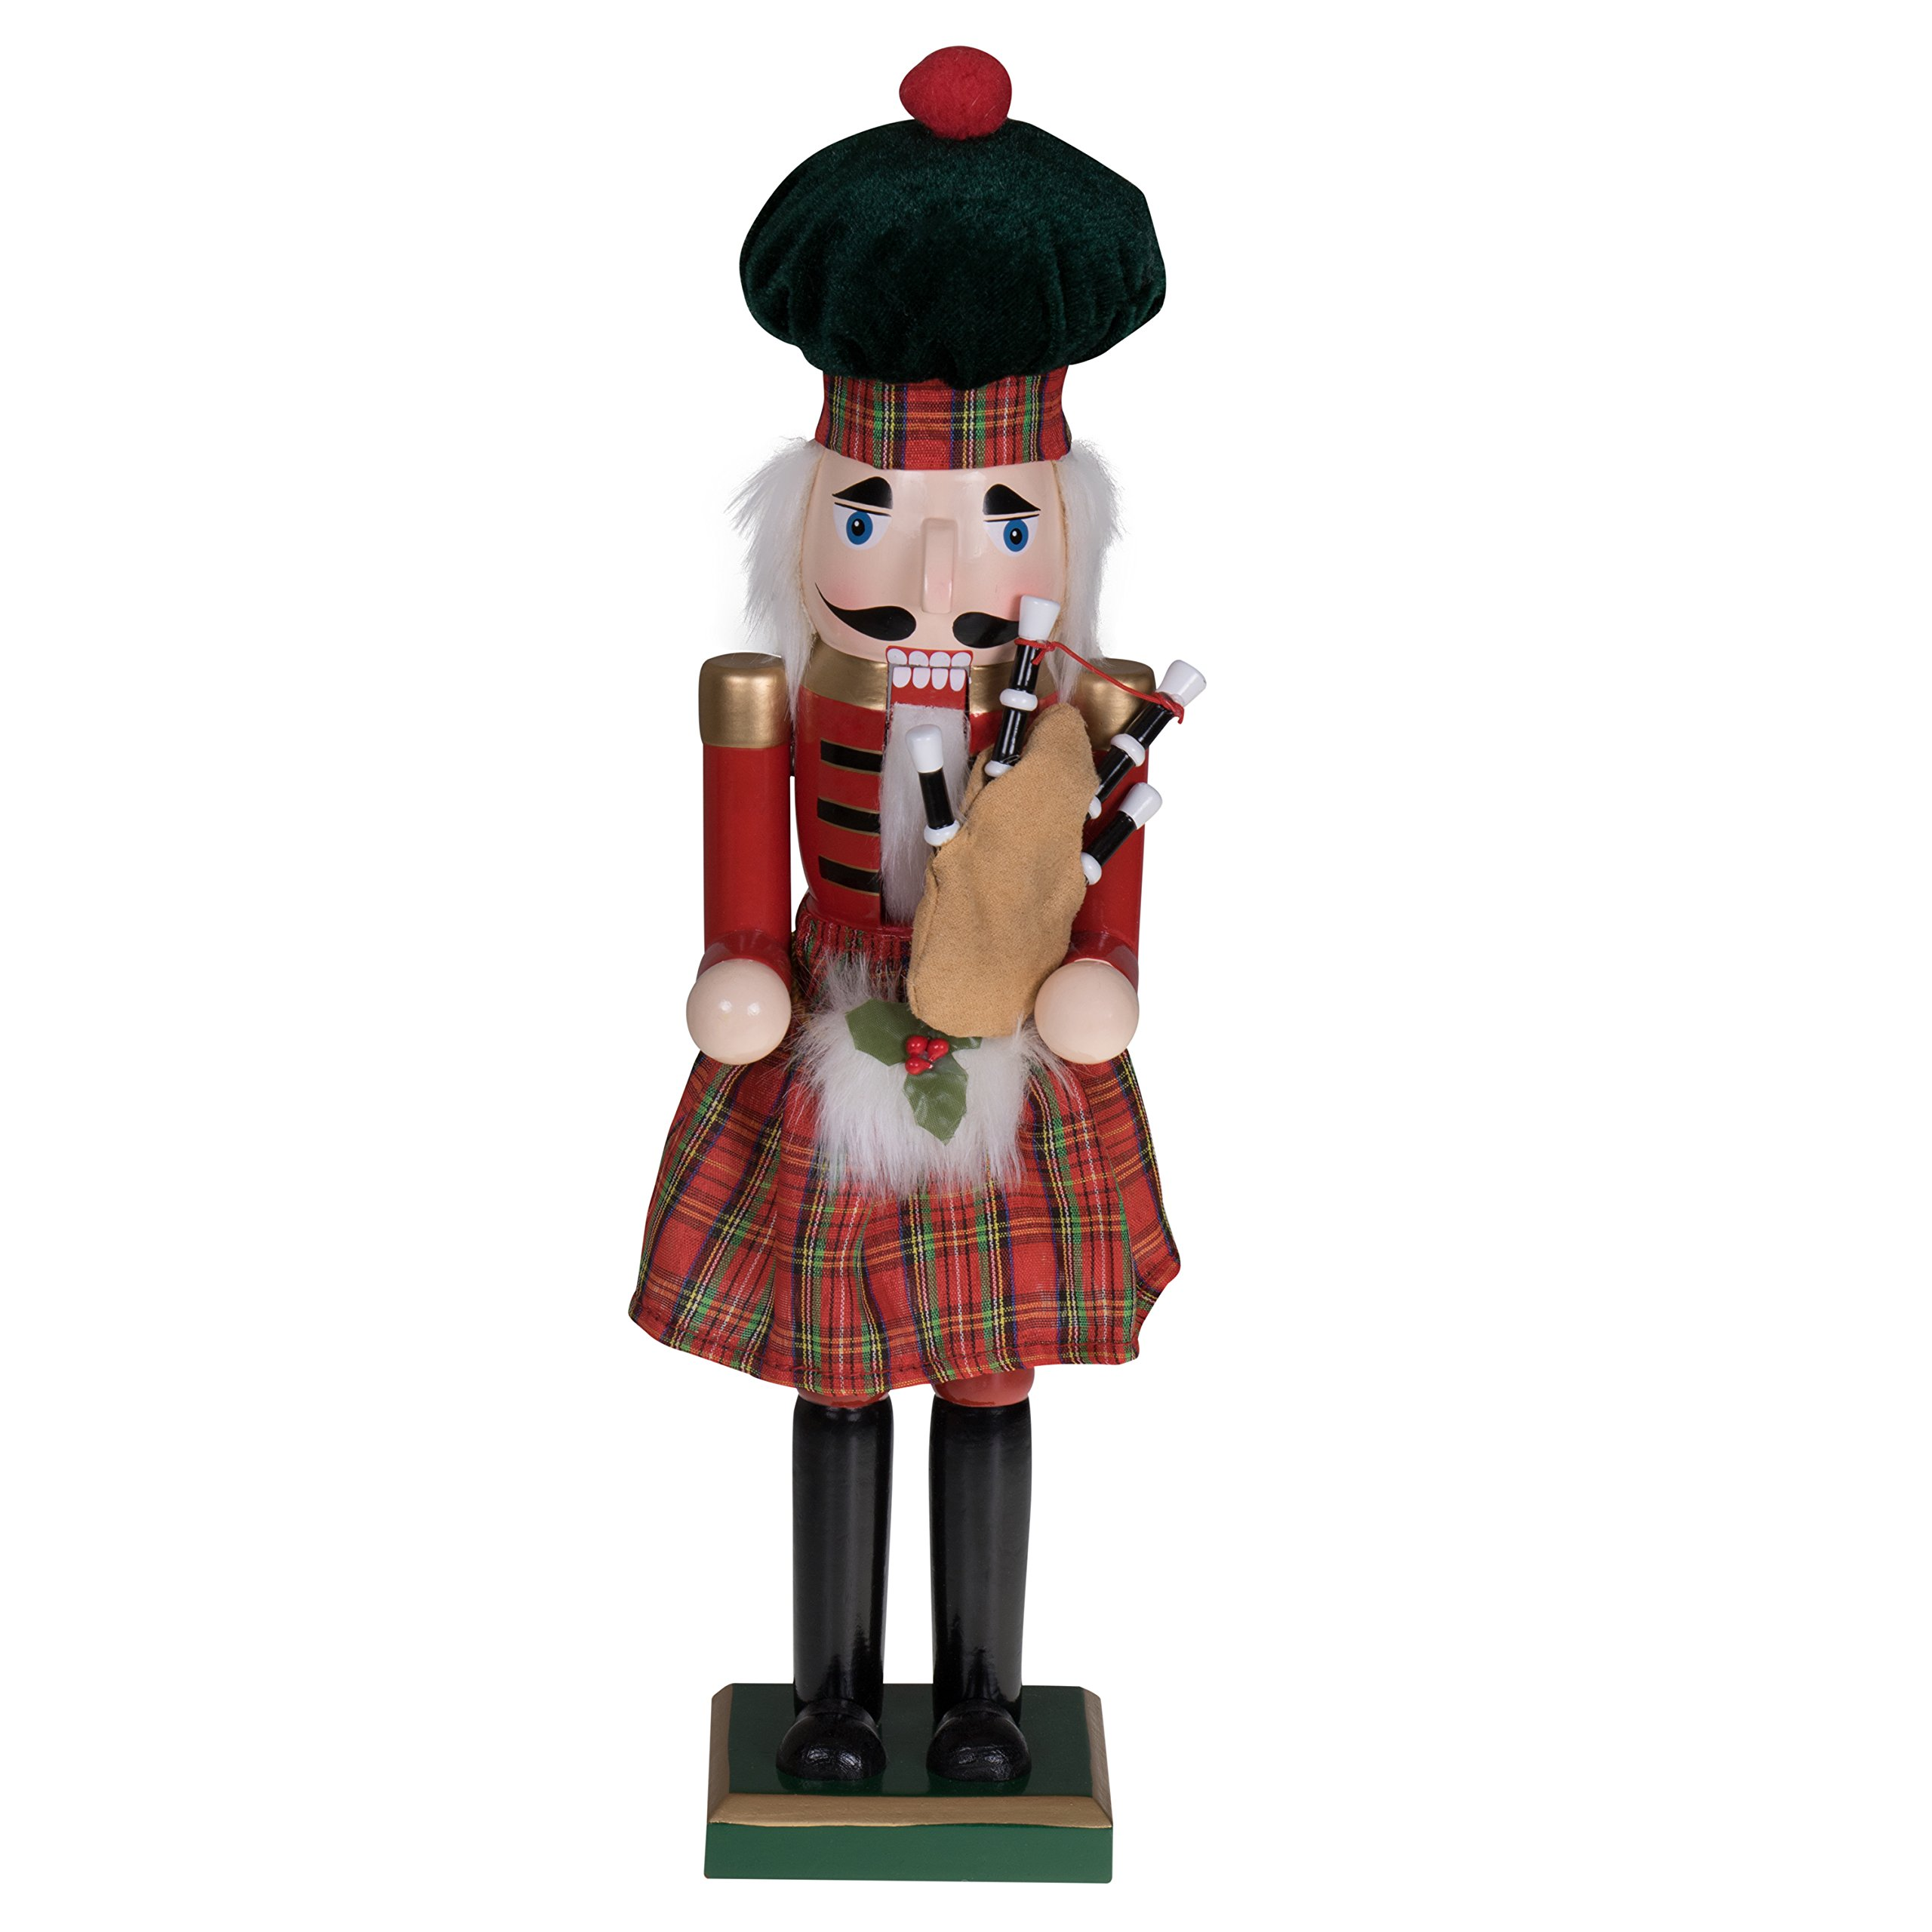 "Traditional Scottish Nutcracker by Clever Creations | Wearing Plaid Kilt, Green Hat and Holding Bagpipes | Festive Collectable Christmas Decor | Perfect for Shelves and Tables | 100% Wood | 15"" Tall"